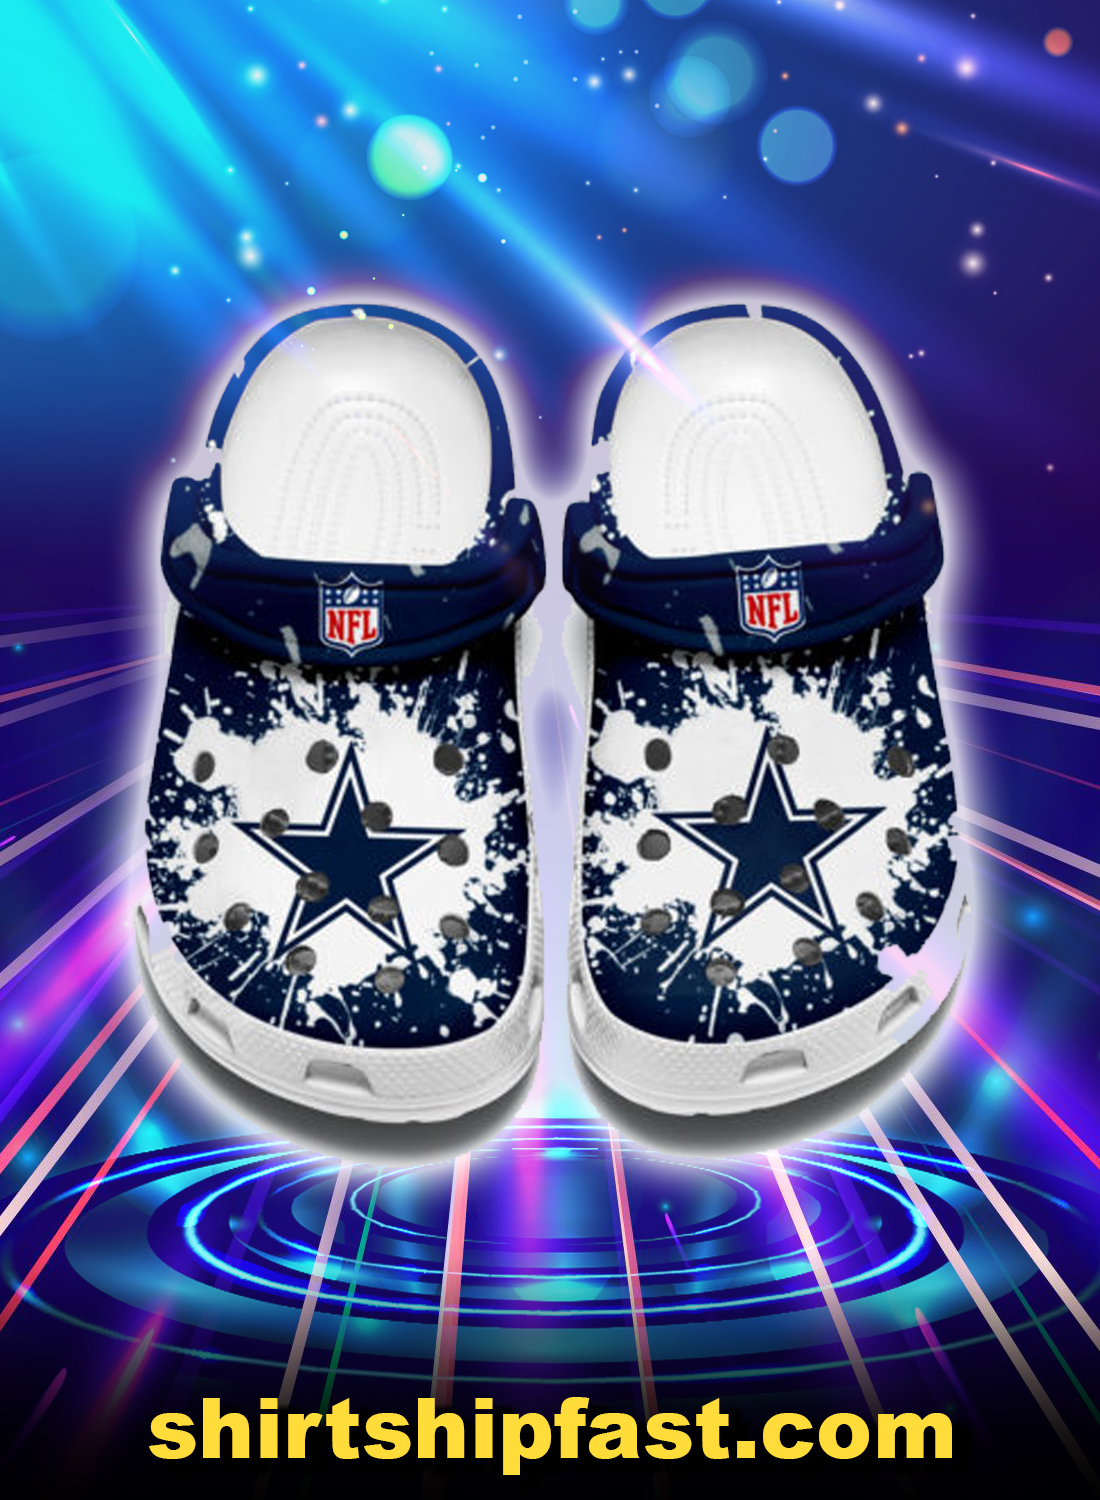 Dallas cowboys crocband crocs shoes - Picture 1